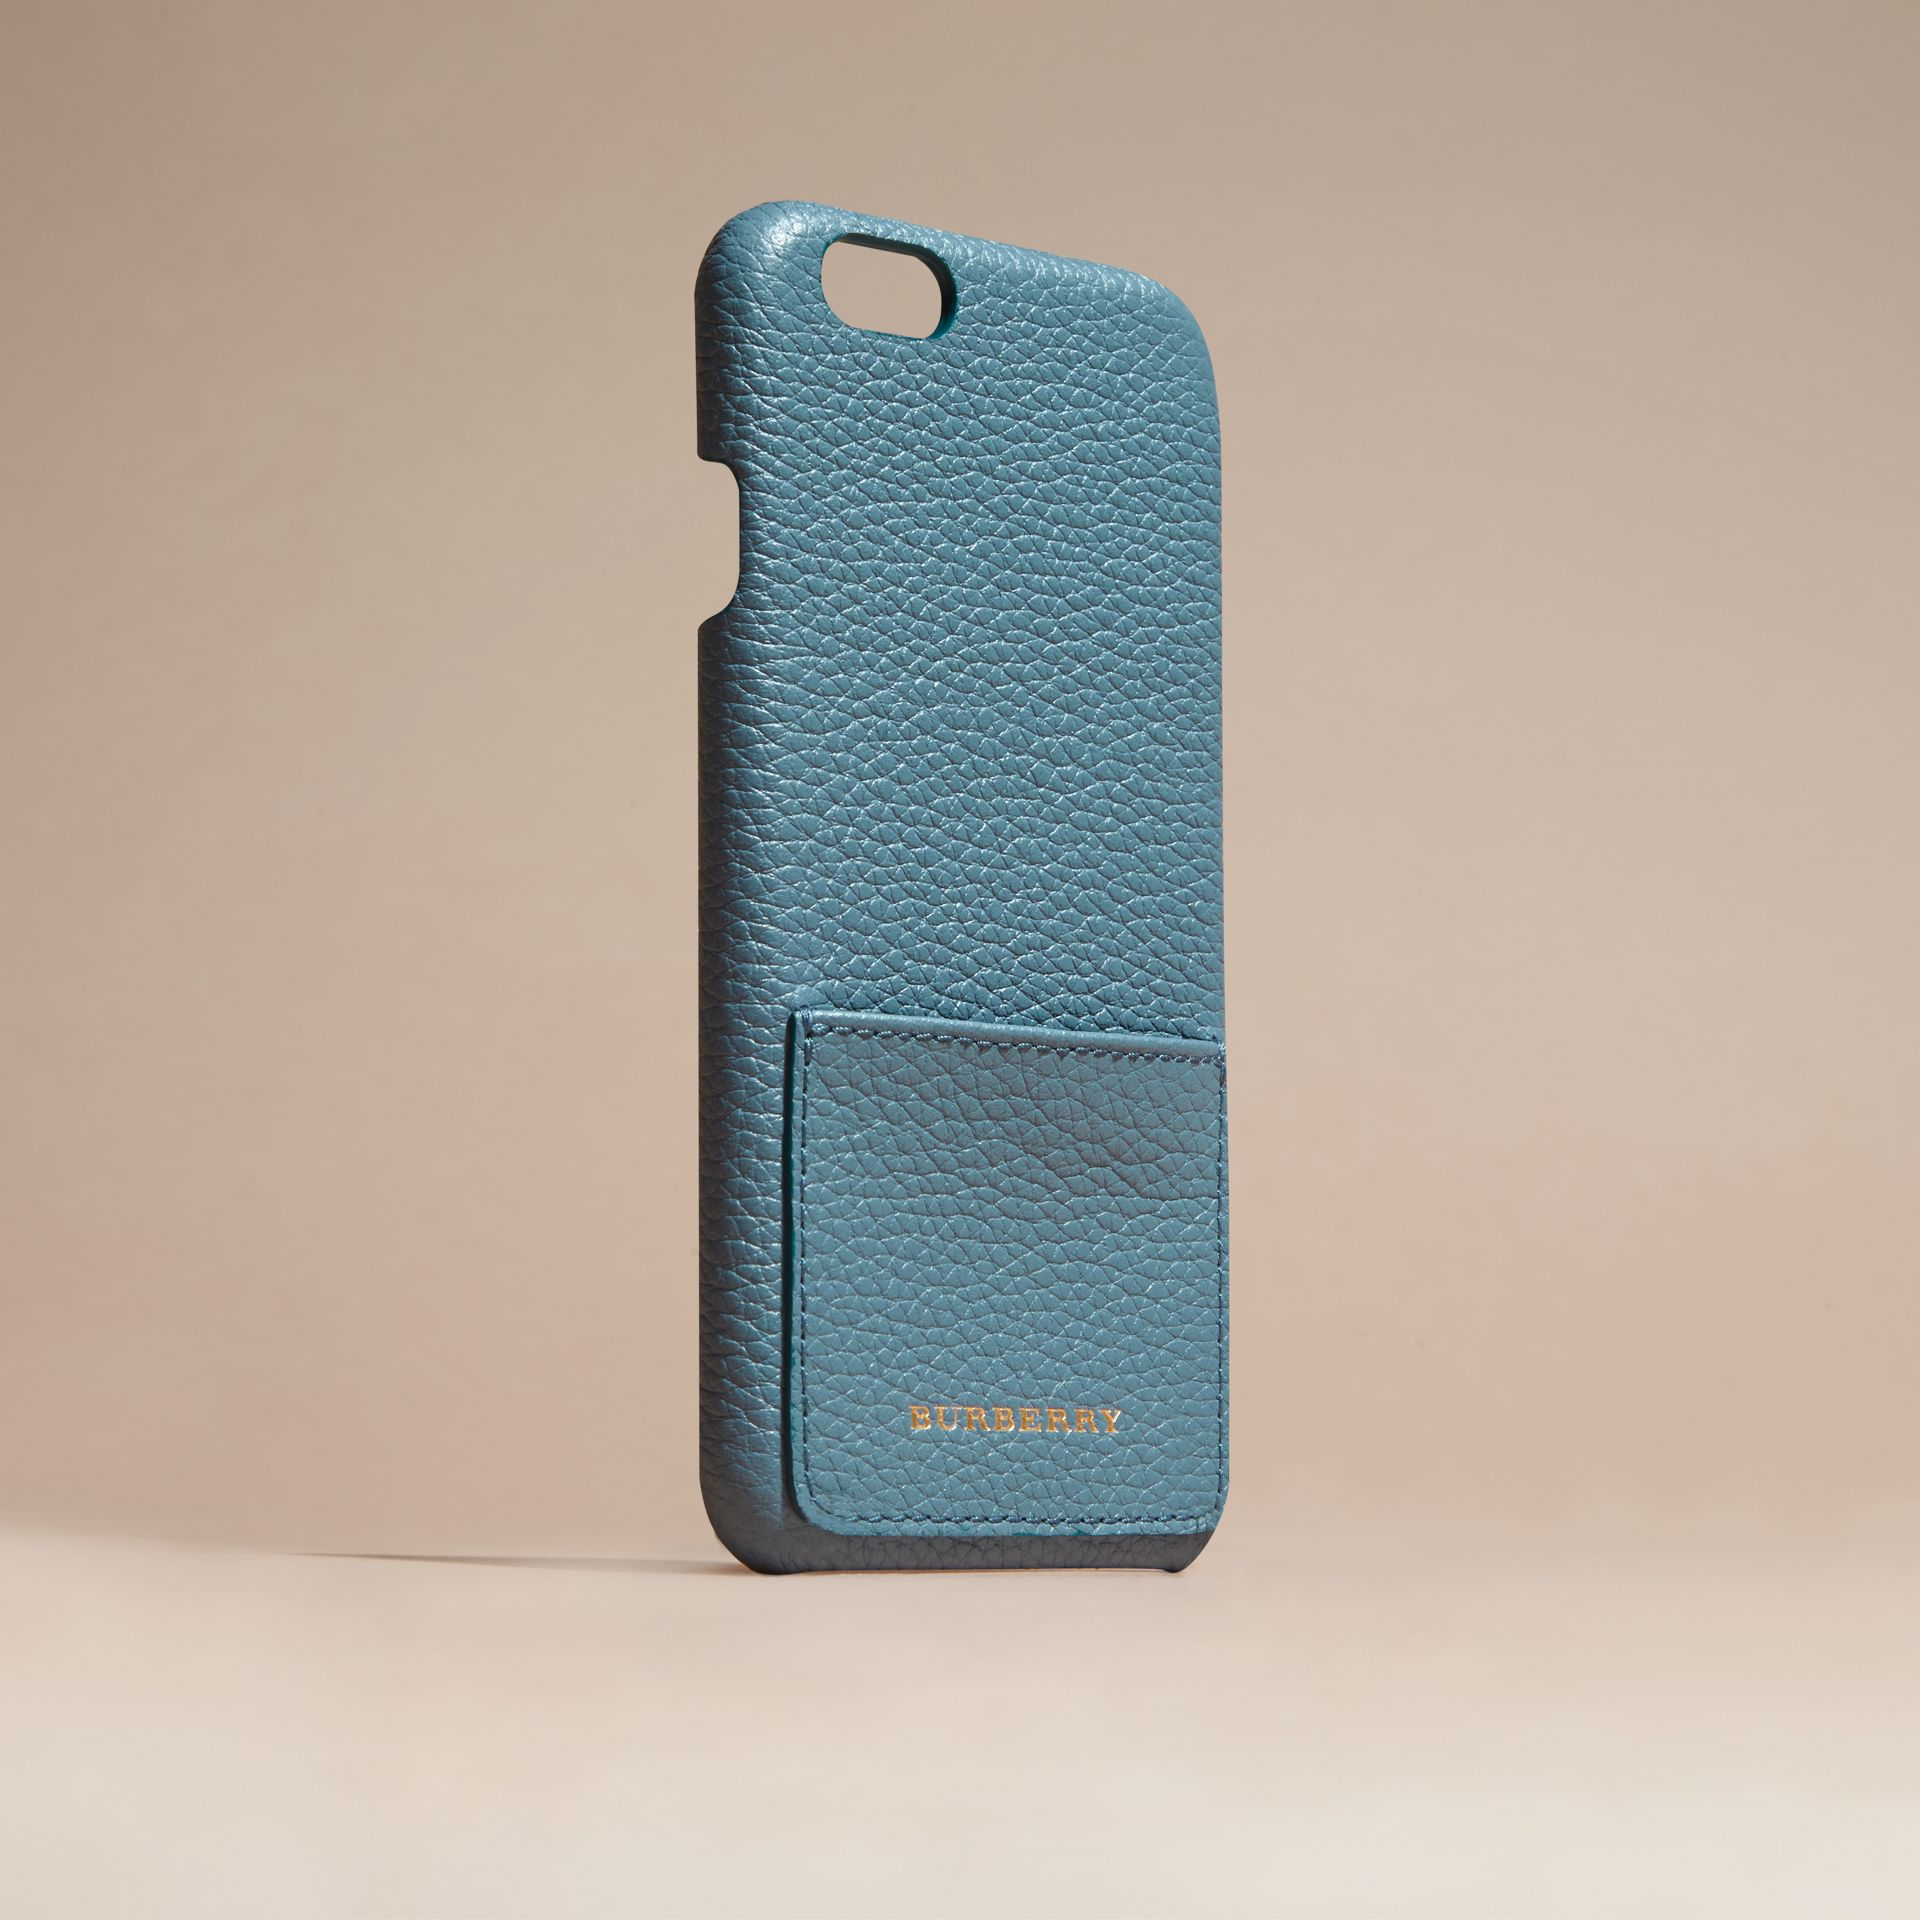 Grainy Leather iPhone 6 Case in Dusty Teal - gallery image 3